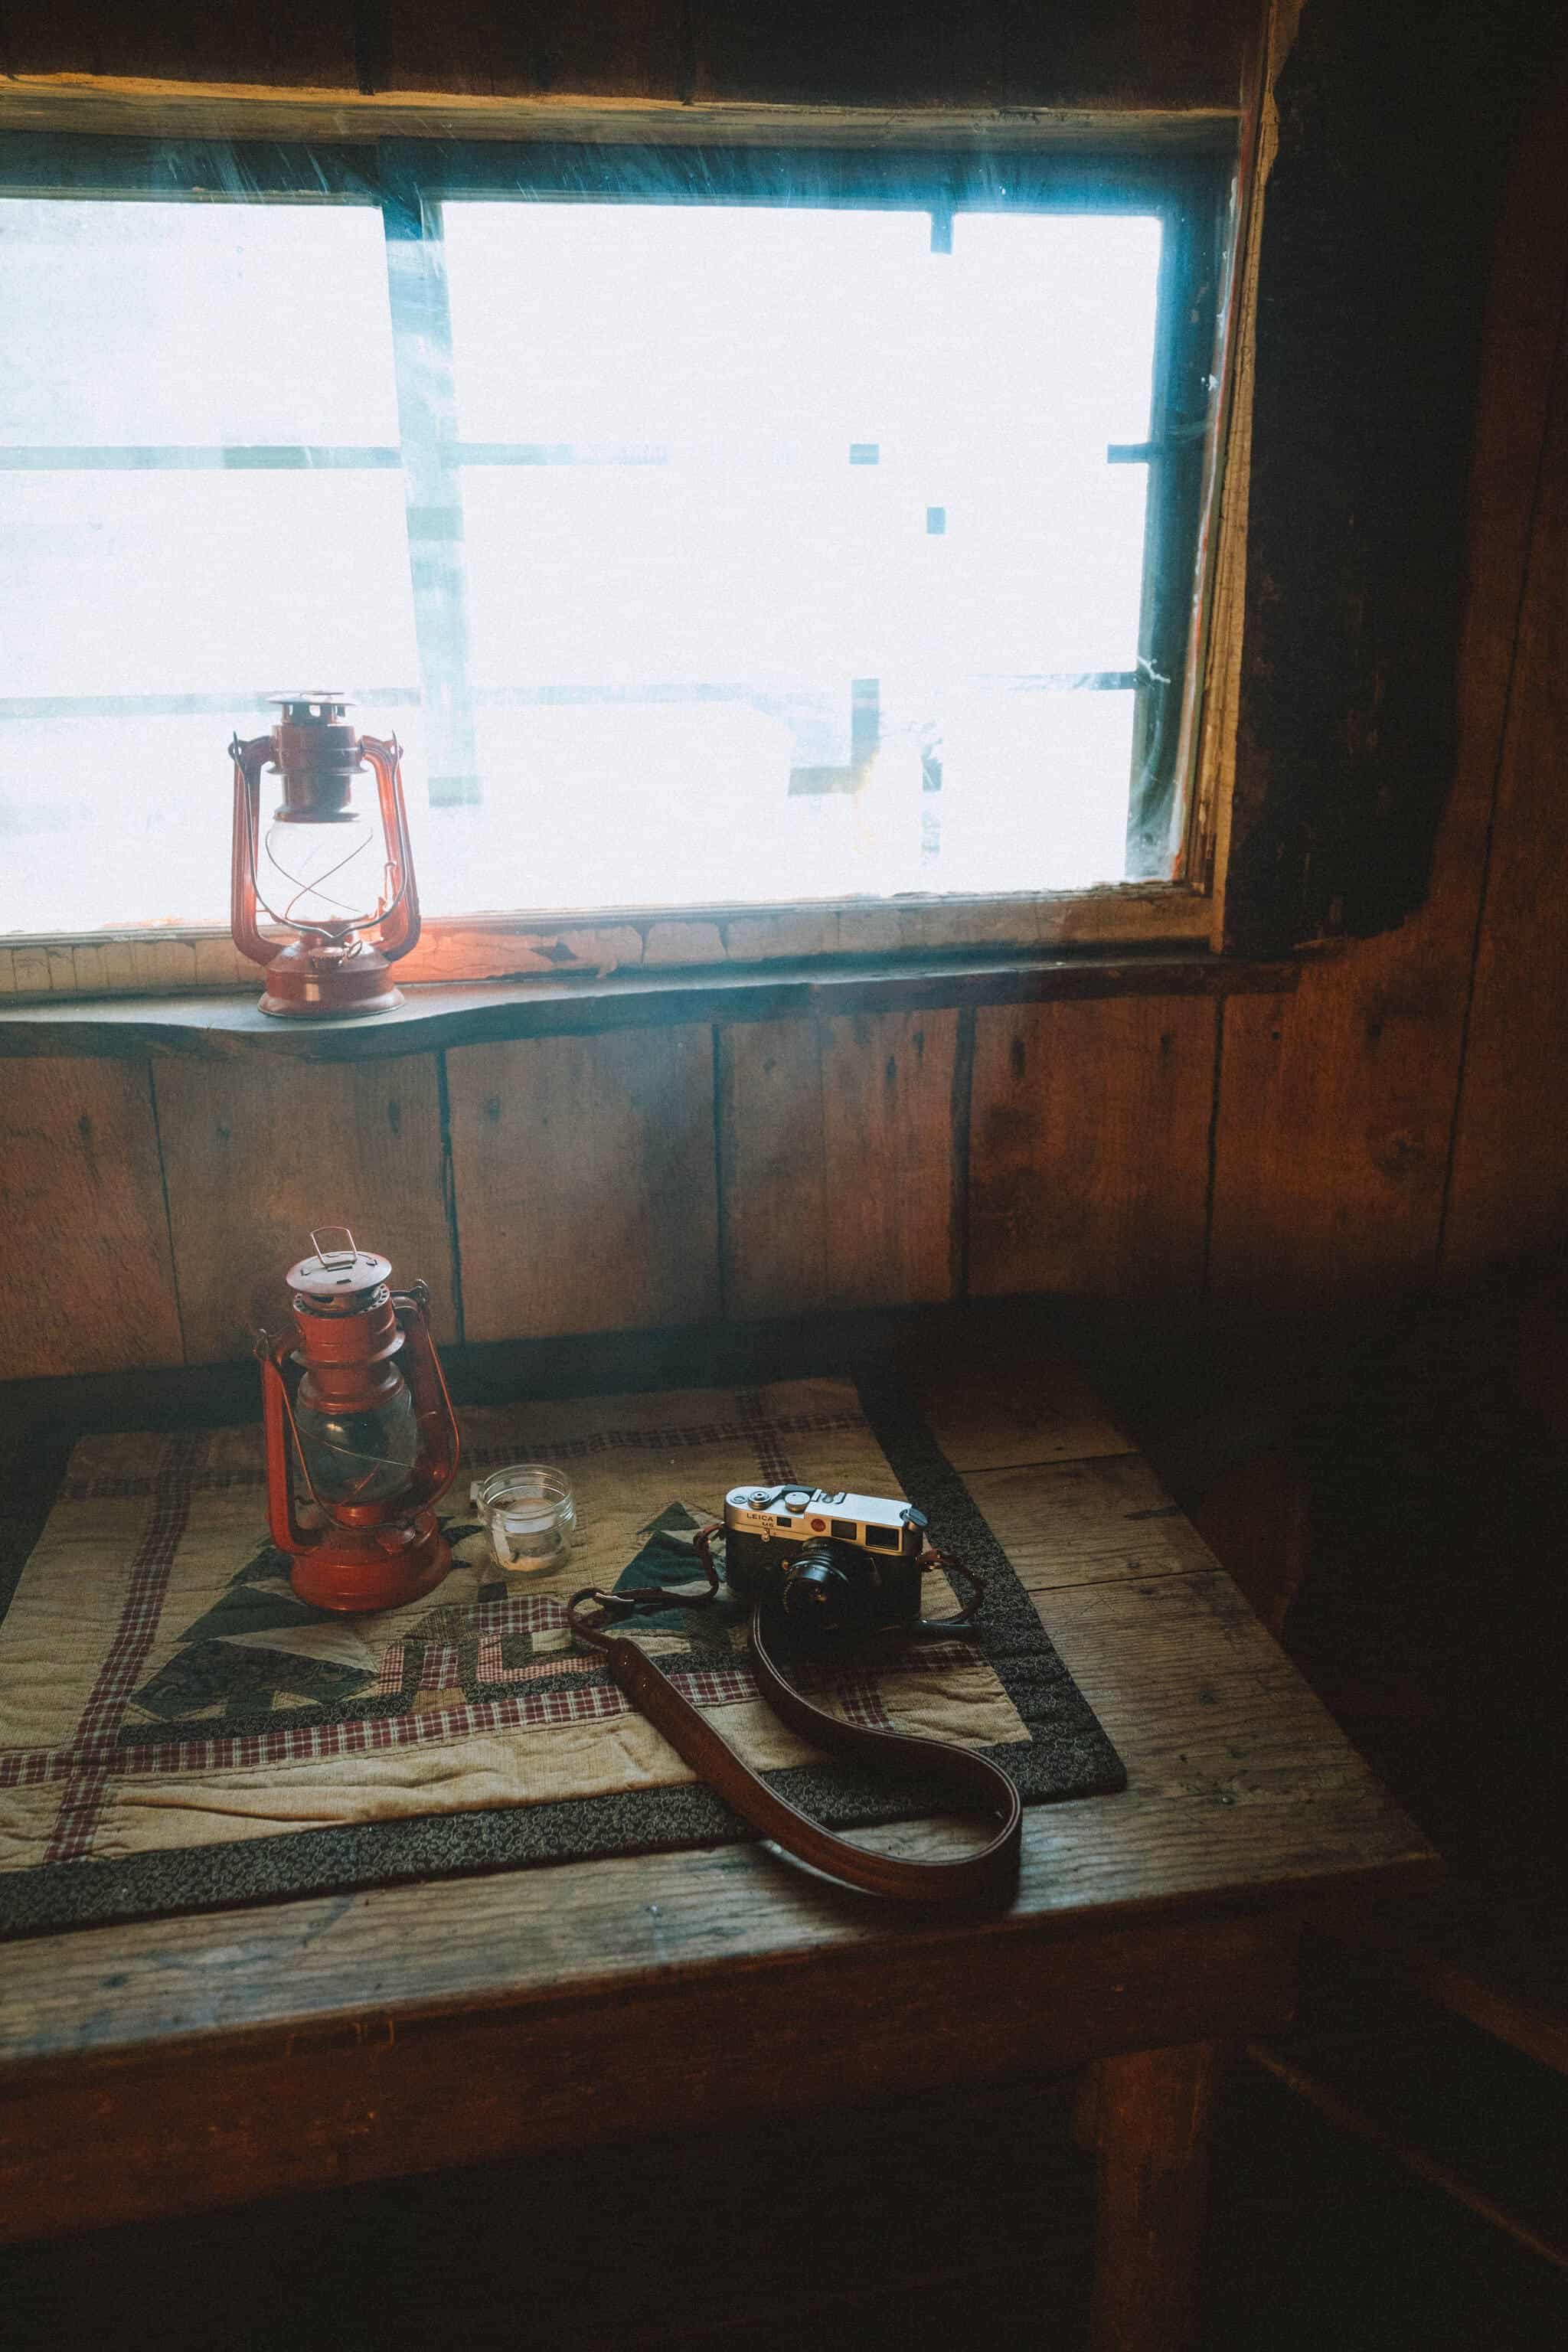 Smokey window with camera and lantern on table